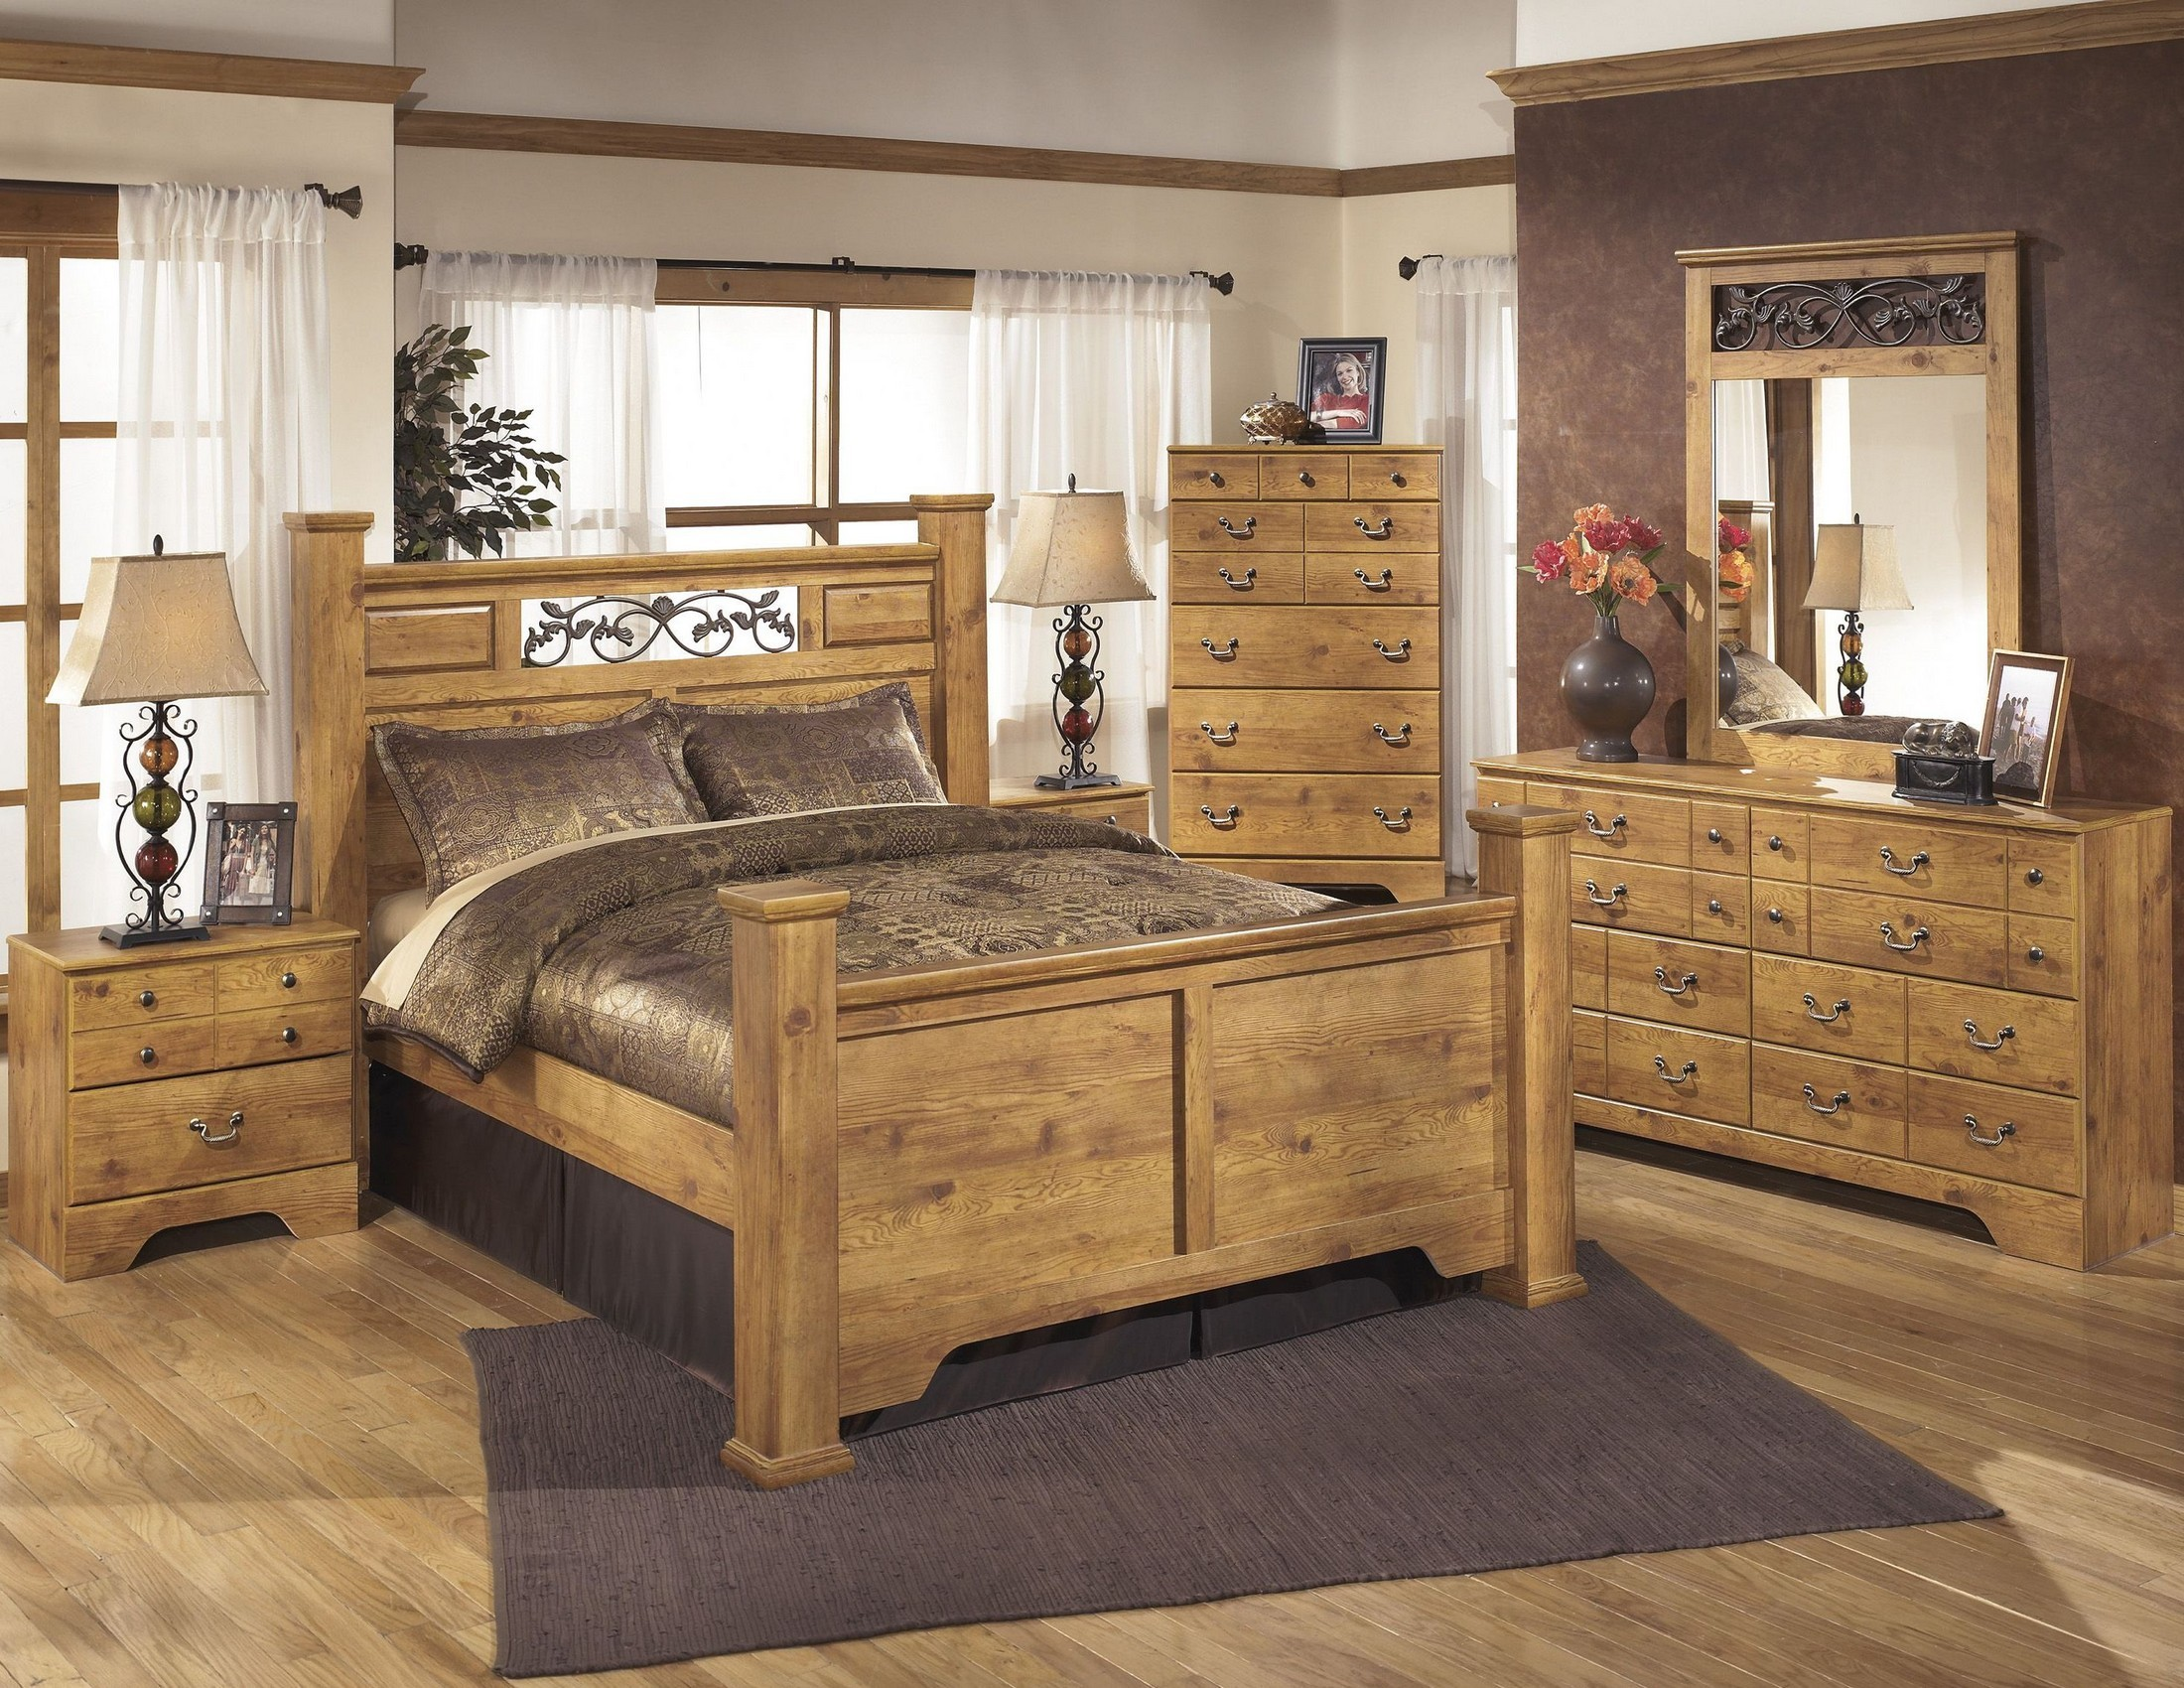 bedroom set bittersweet king upholstered to related with sleigh gerlane graphite assembly ledelle queen bedding discontinued twin local bringithomefurniture com in porter furniture buy topic ashley storage bed full